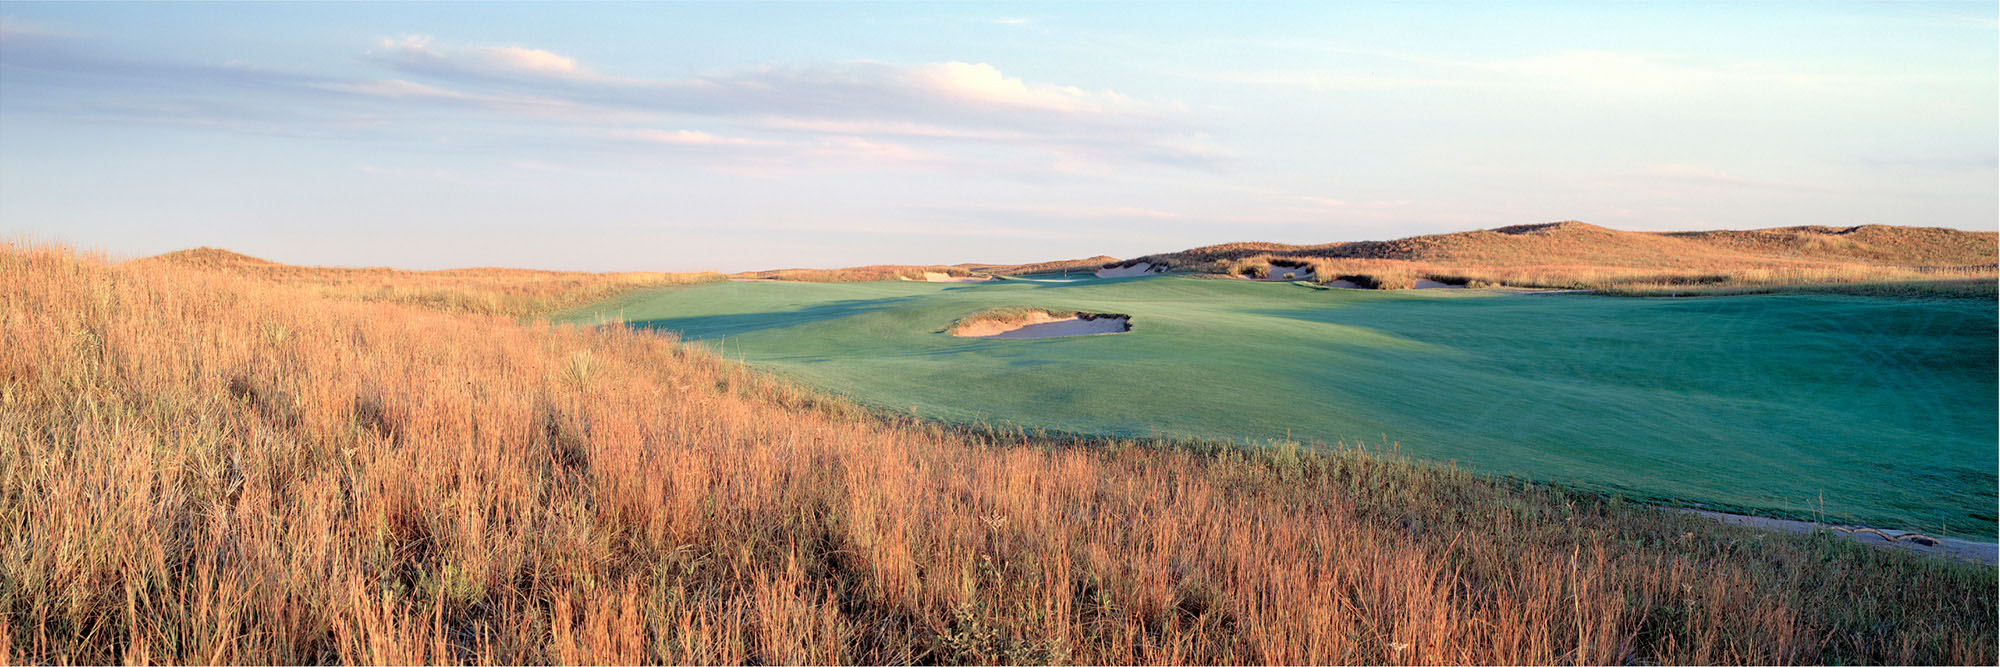 Golf Course Image - Sand Hills No. 5